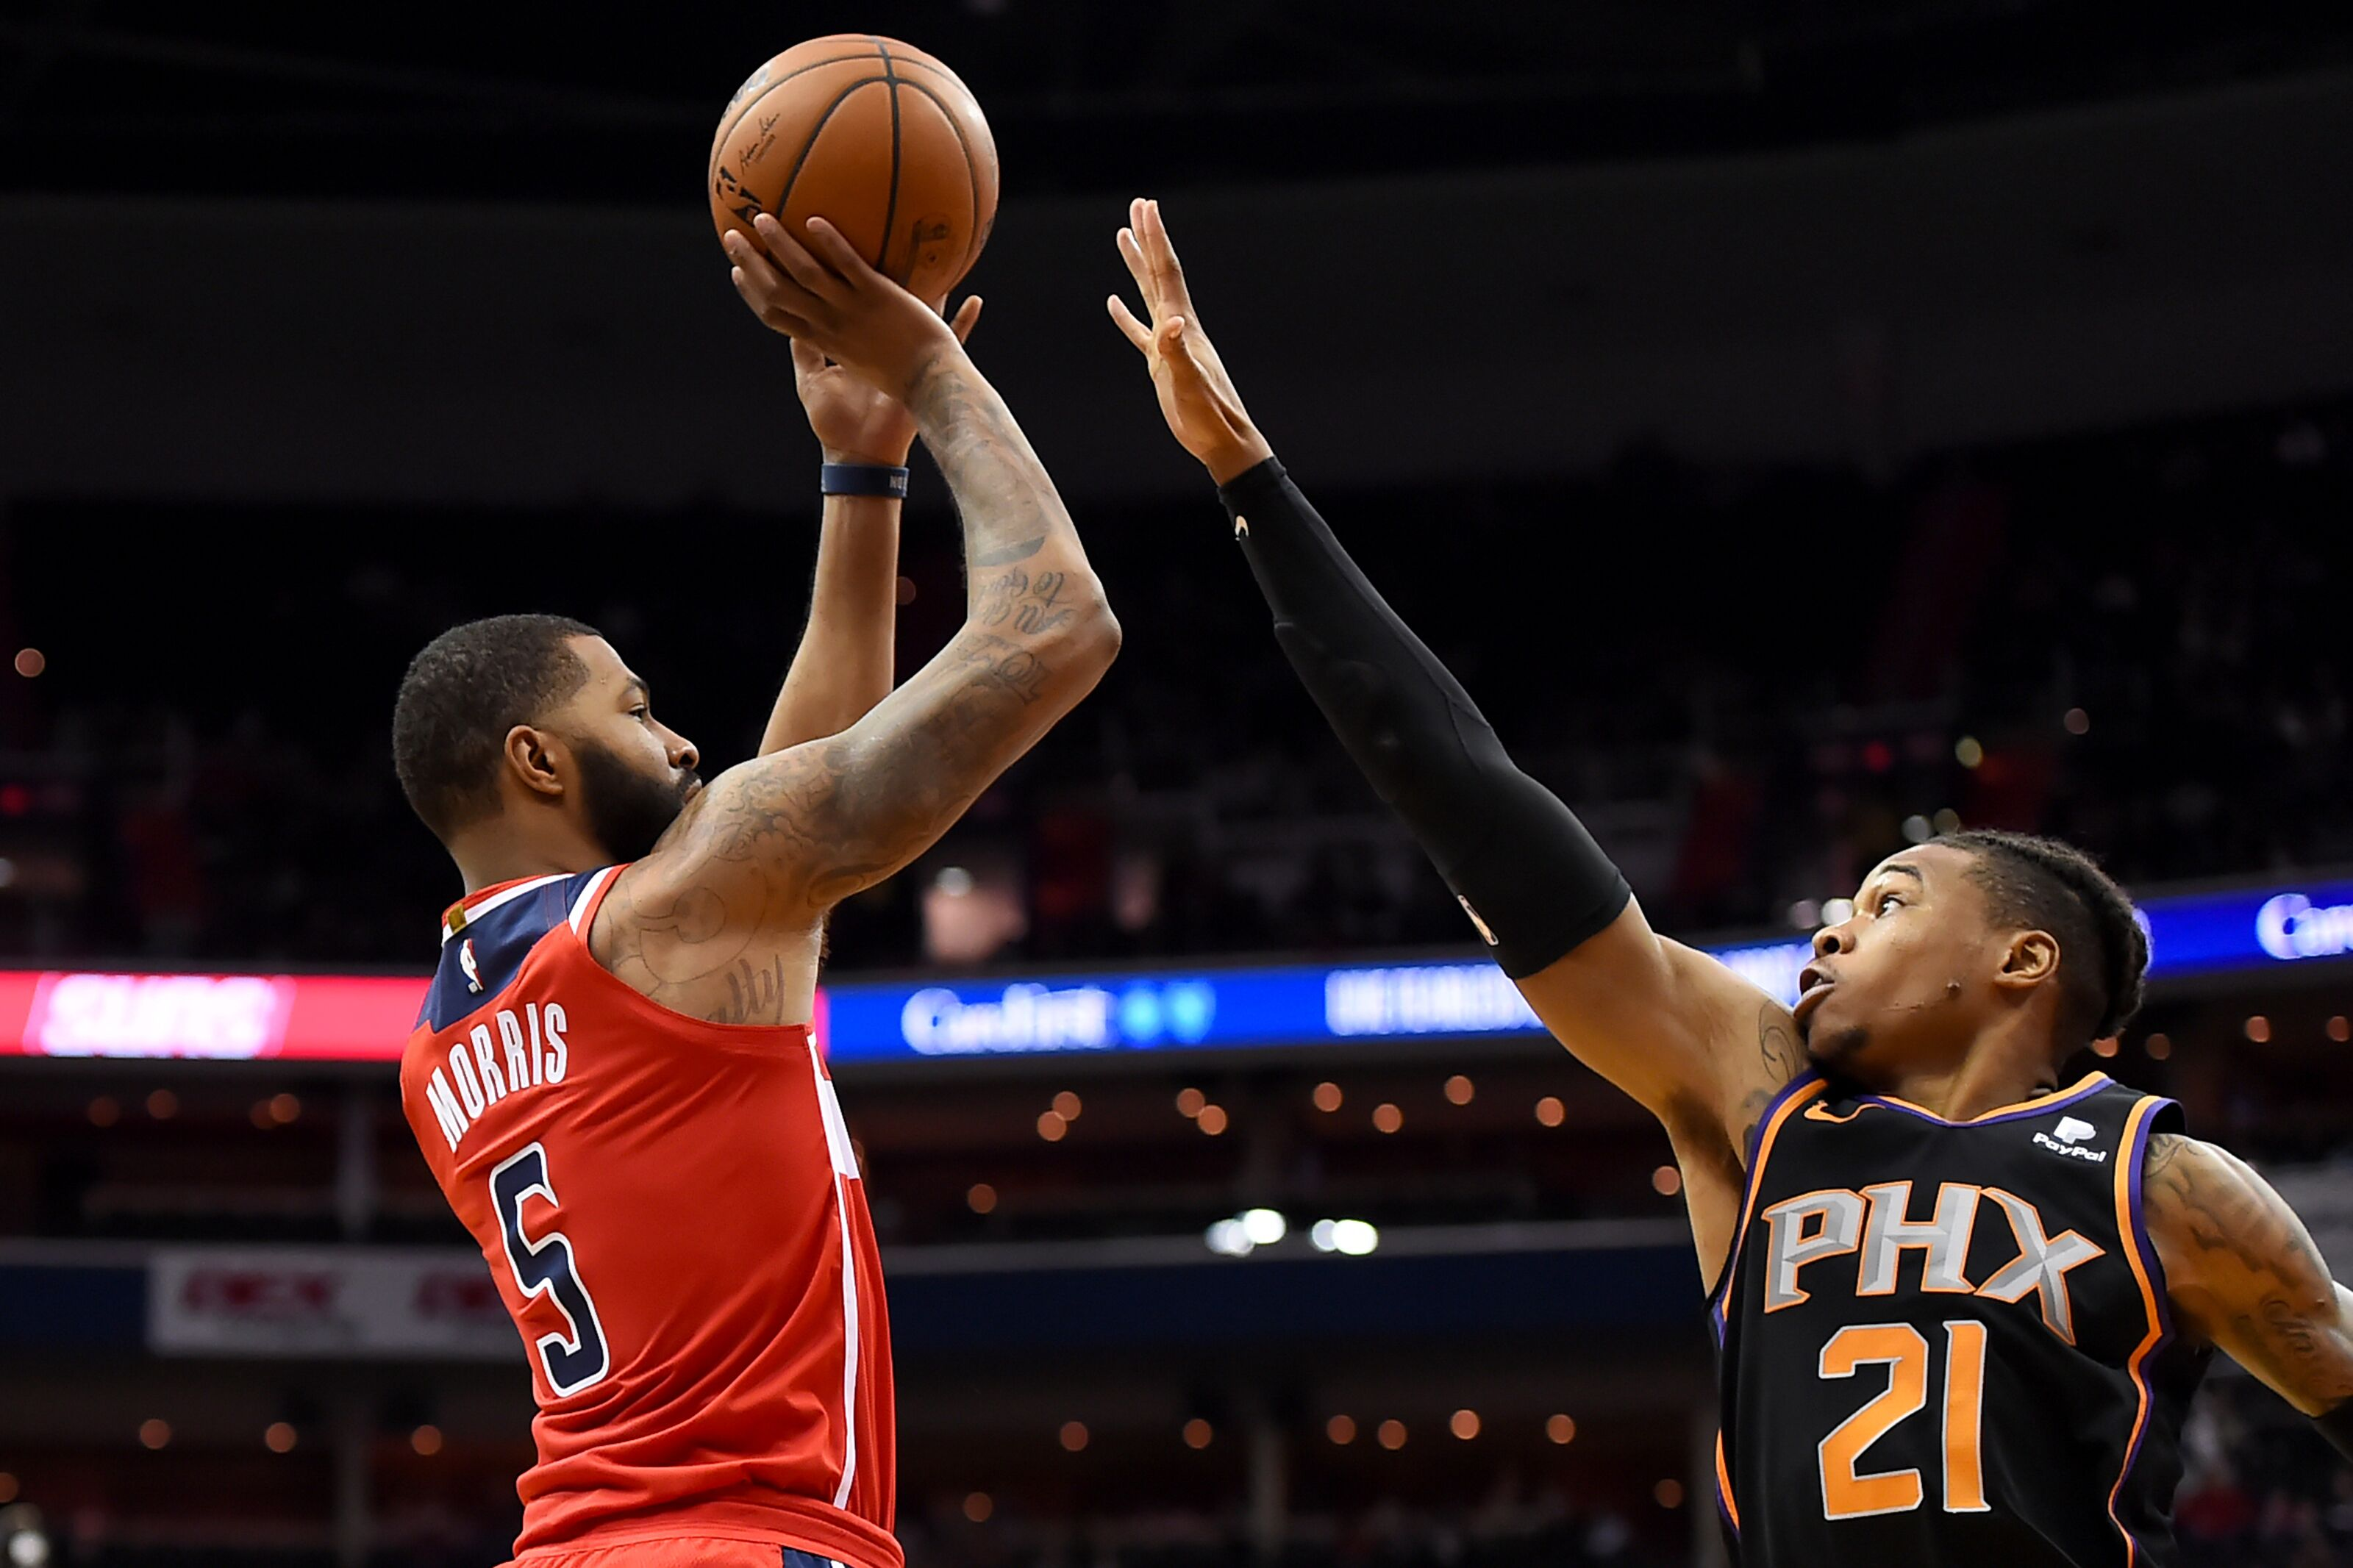 Los Angeles Lakers lose out on Markieff Morris to Oklahoma City Thunder